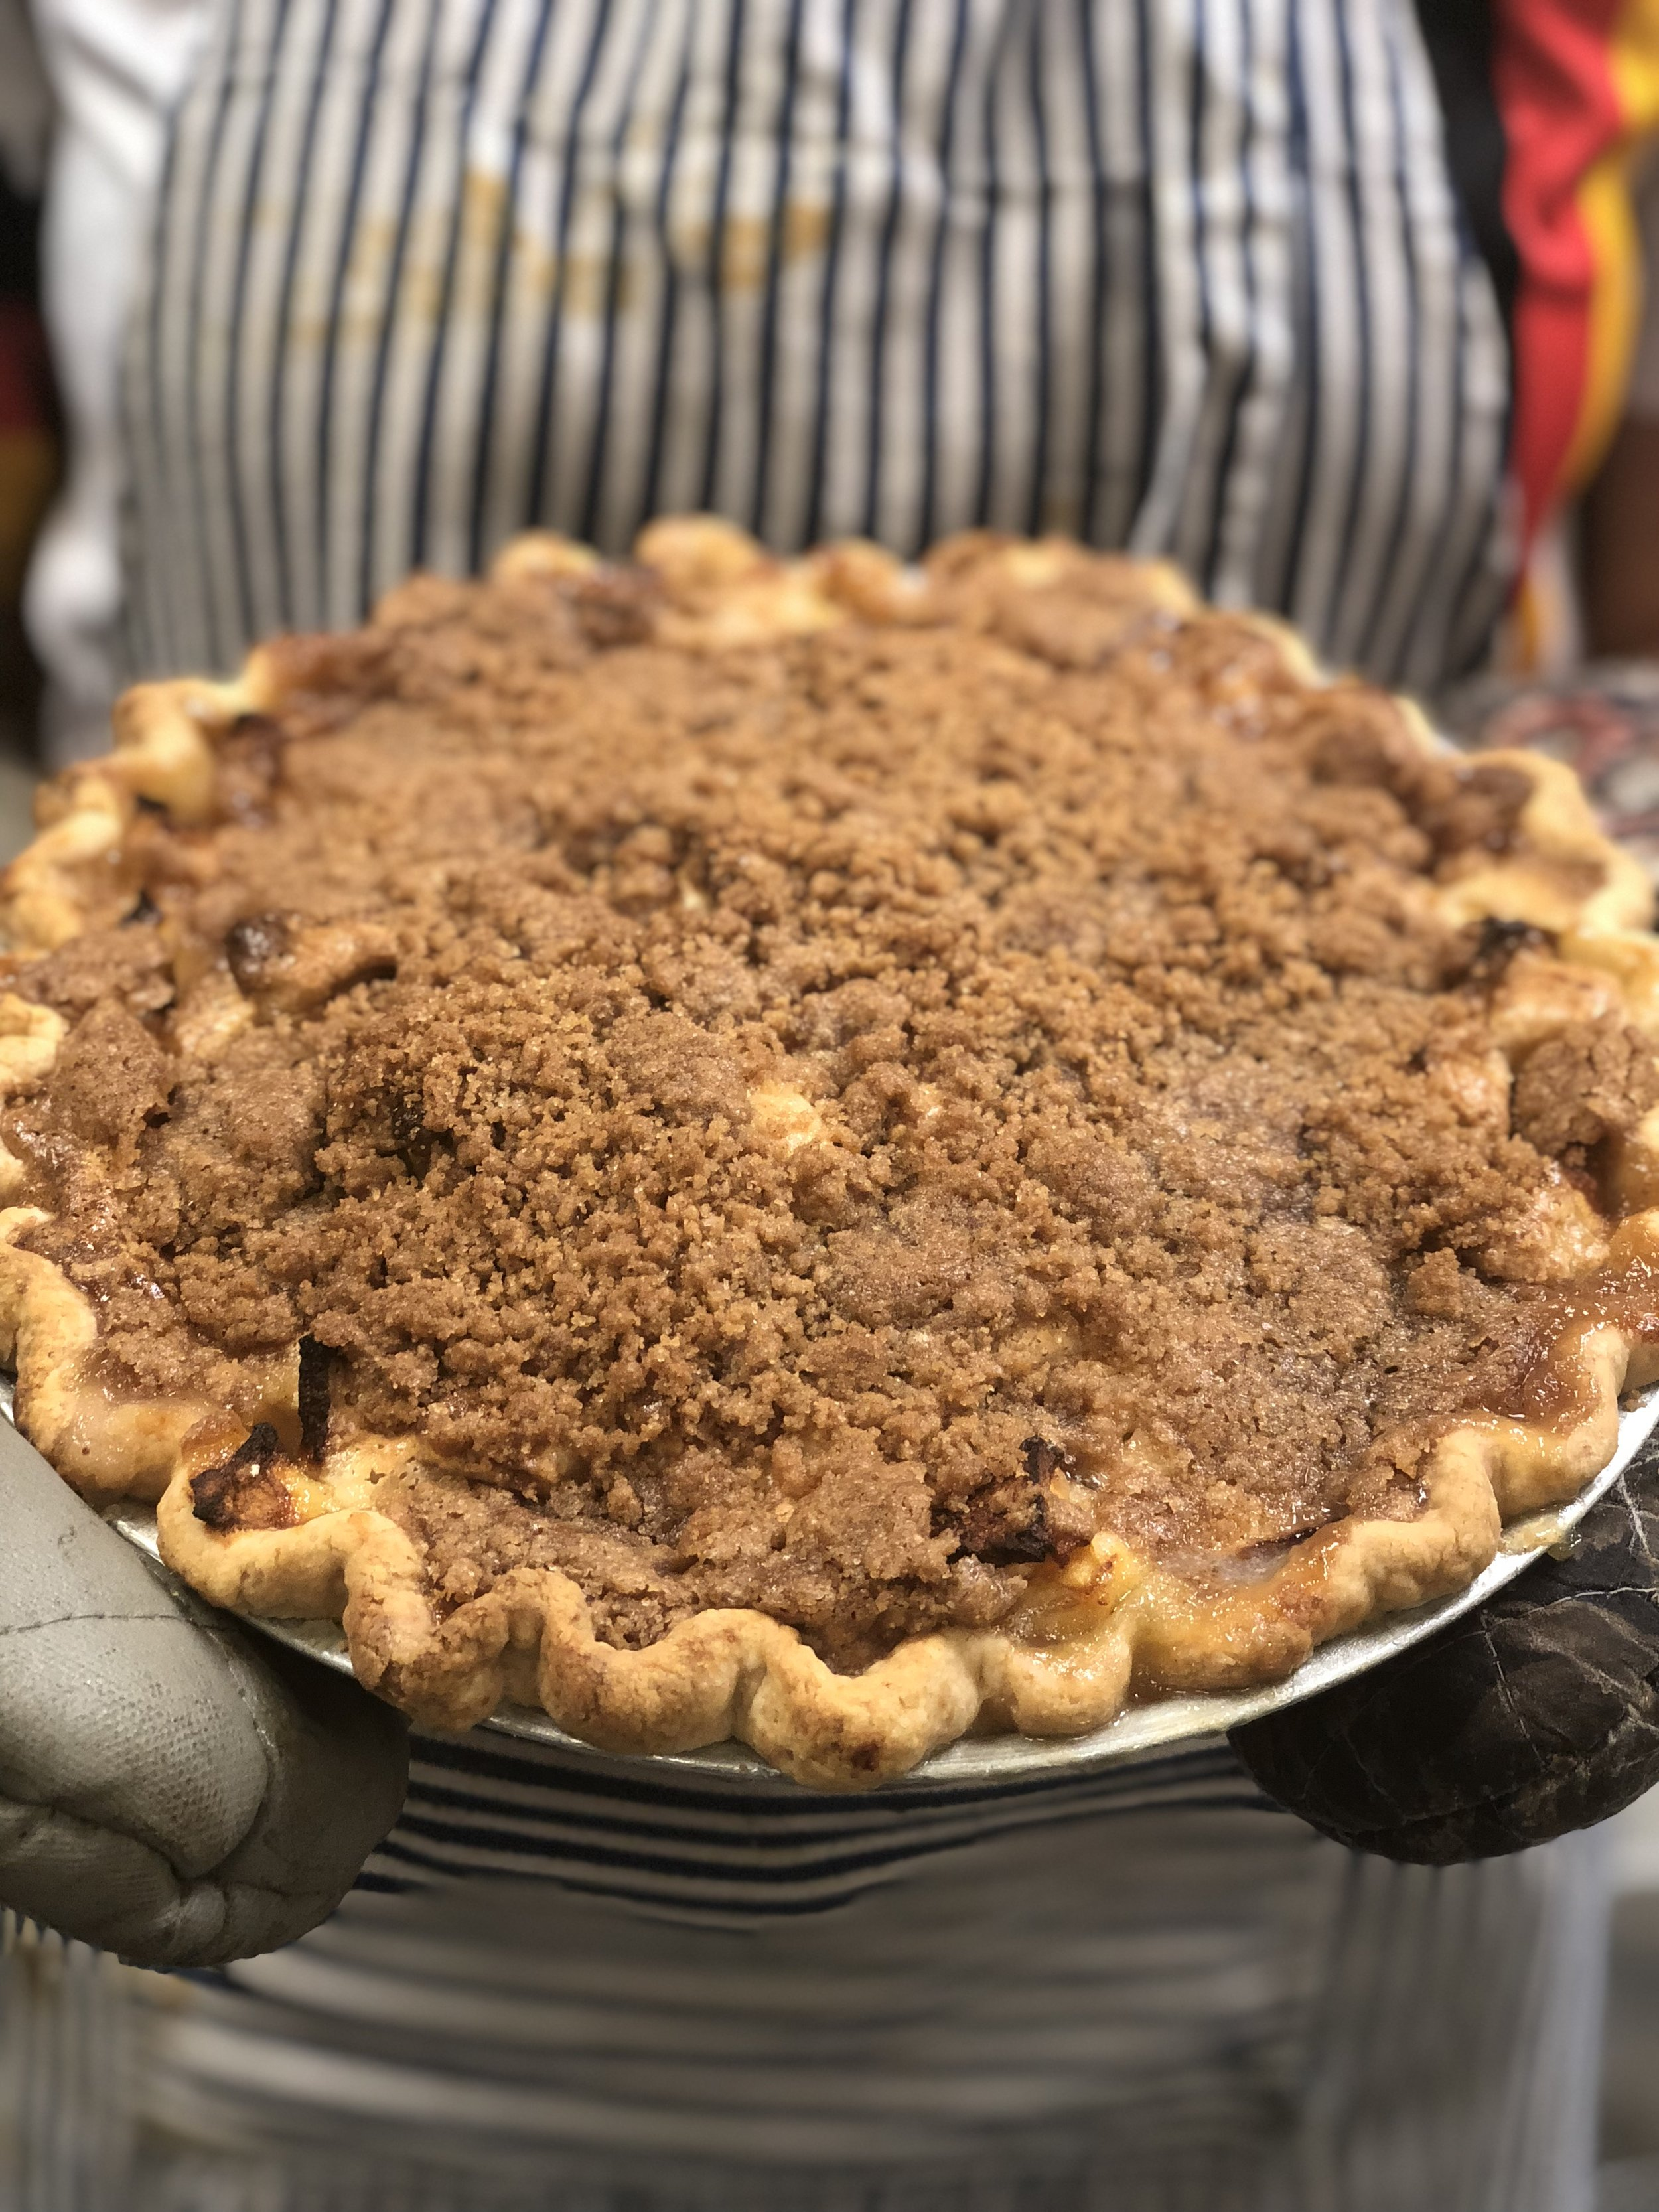 - Once the top of the pie is completely covered with the topping, turn the oven temperature up to 350 and bake for another 20 minutes.